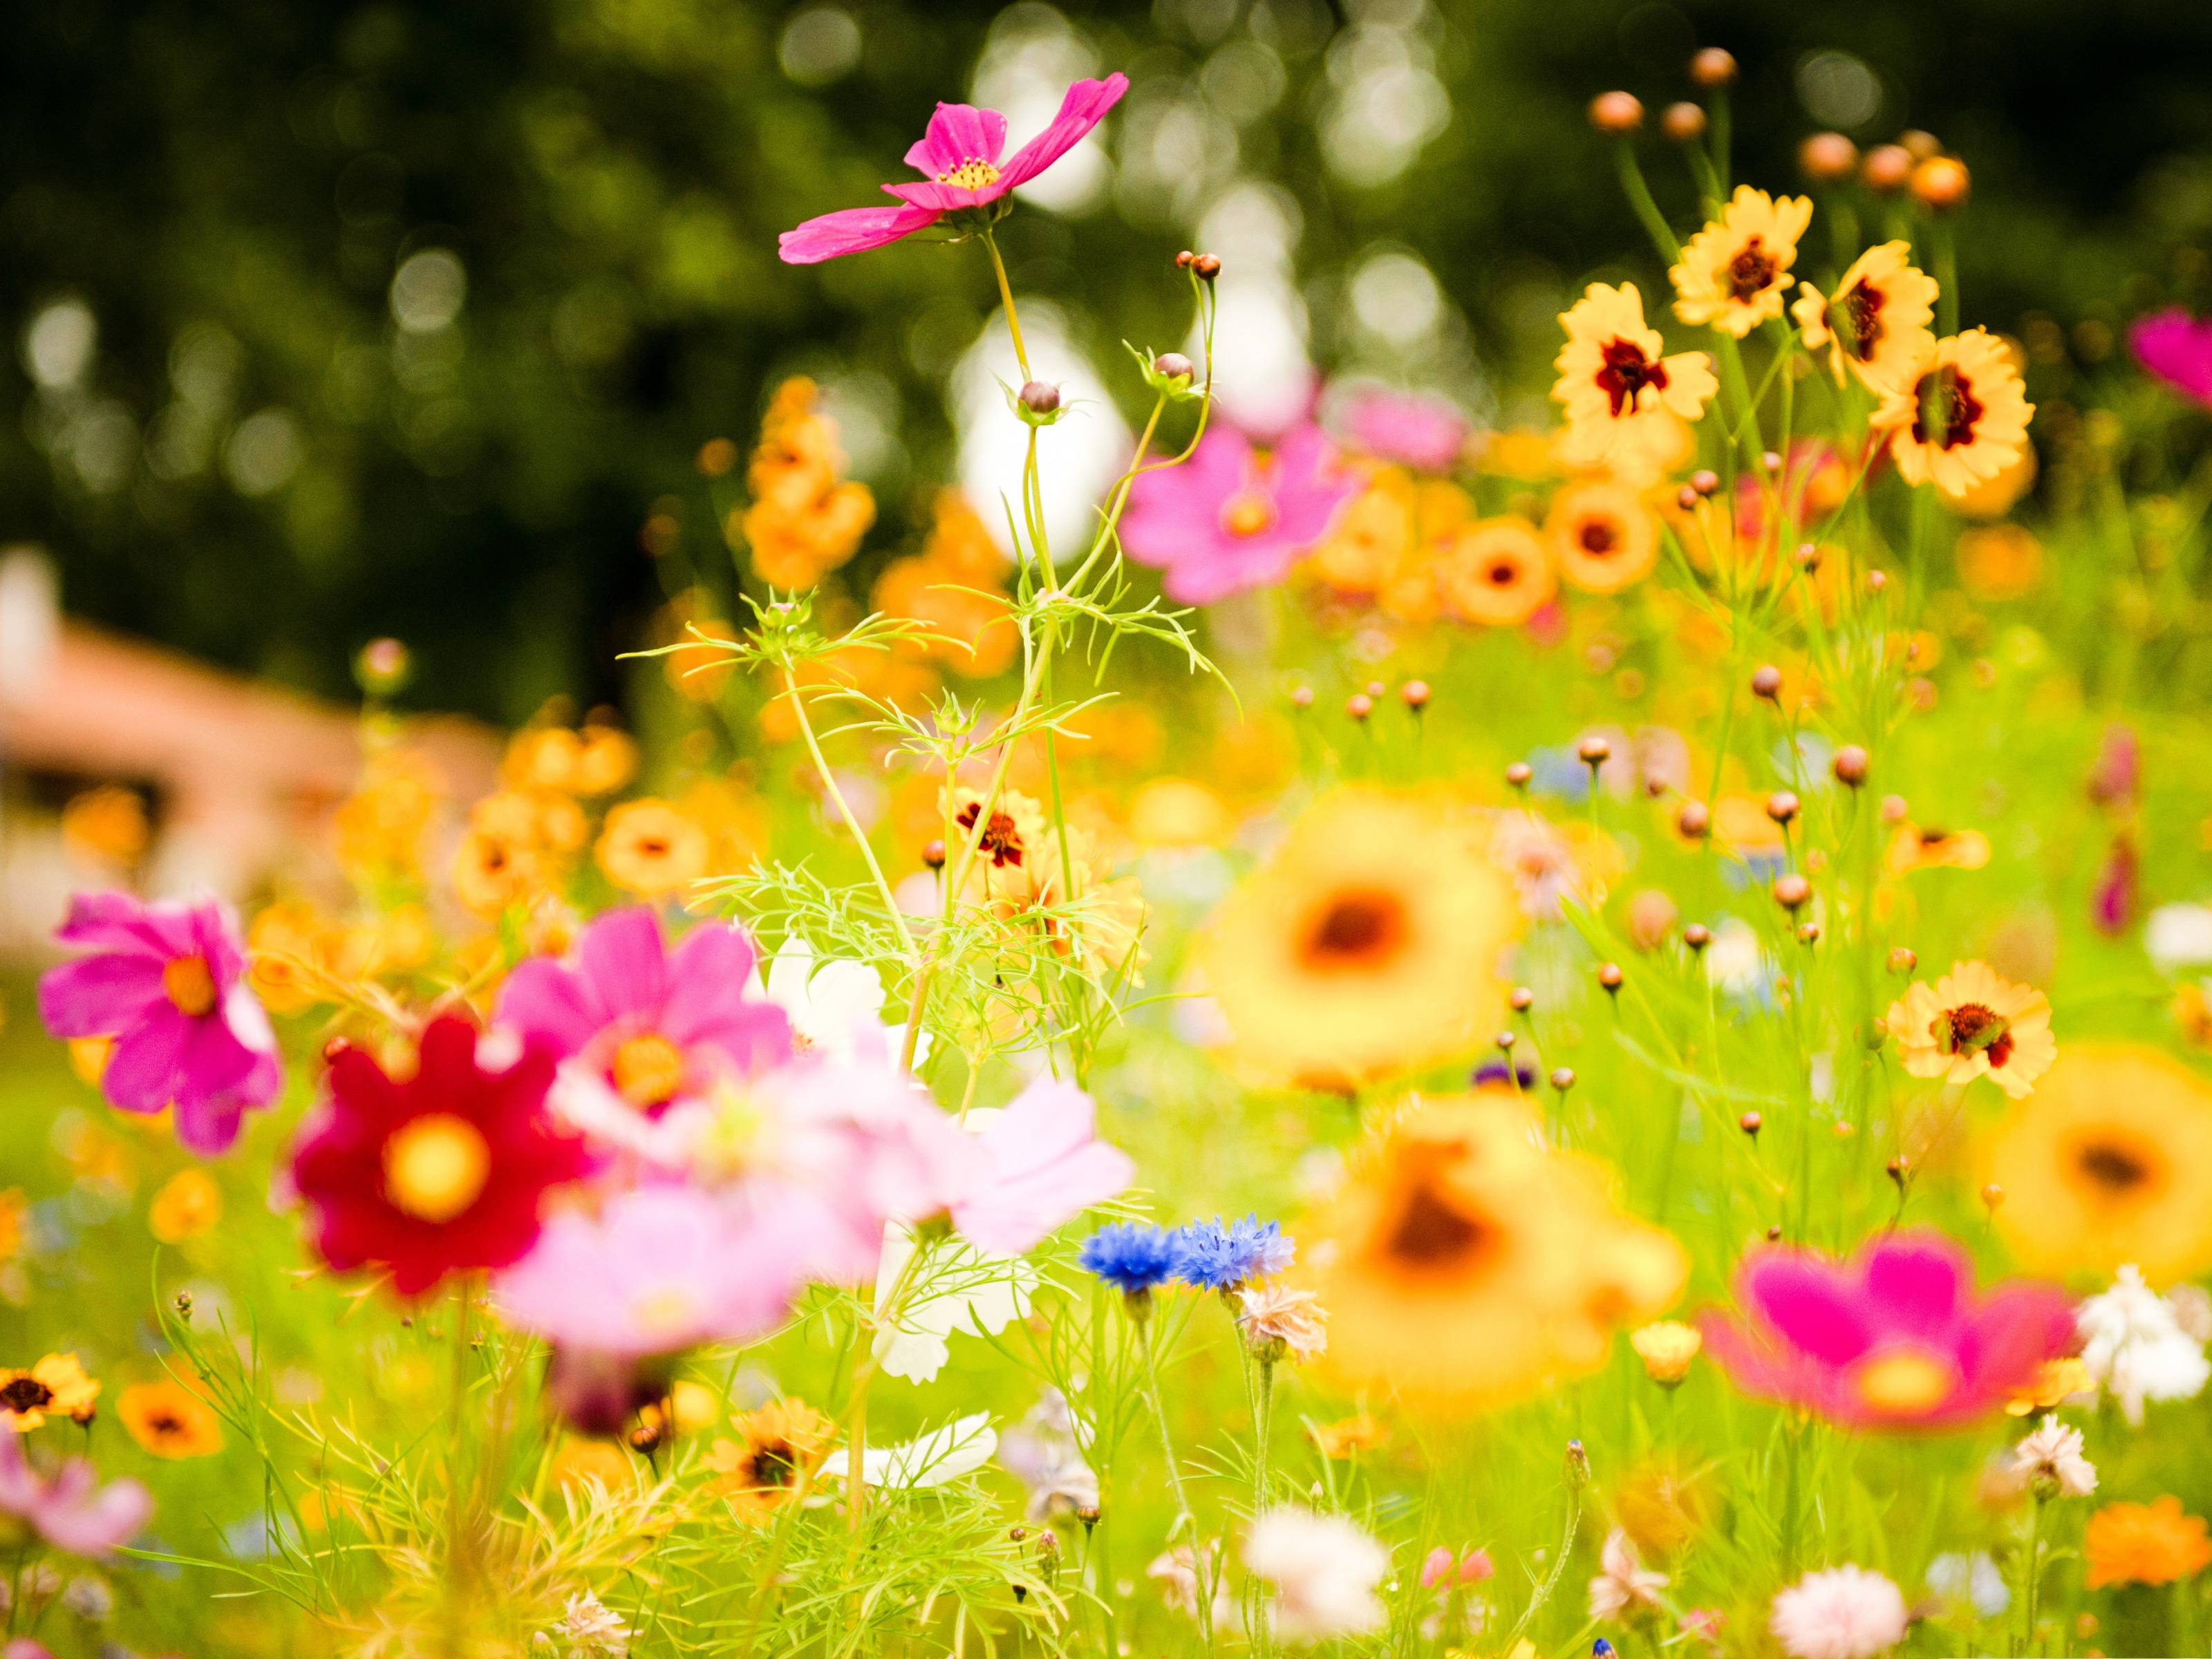 click to free download the wallpaper--Colorful Flowers Picture, Tiny Flowers in Bloom, Green Grass Around 3200X2400 free wallpaper download